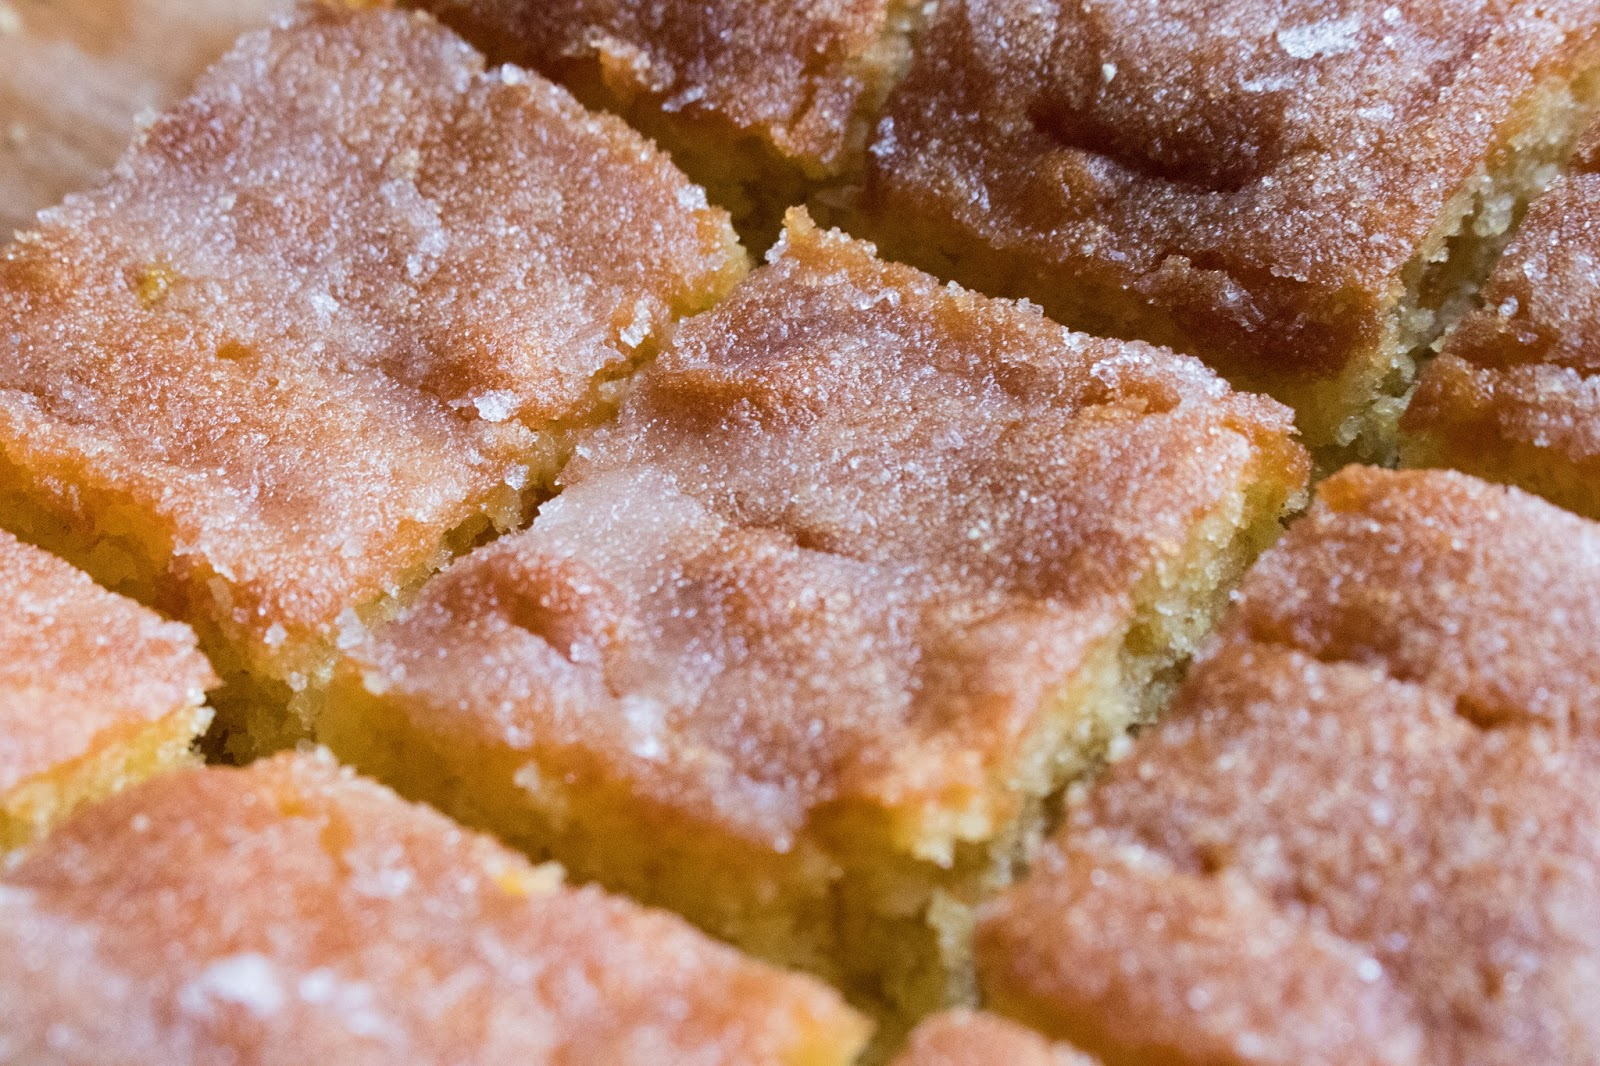 Close up of lemon/sugar topping